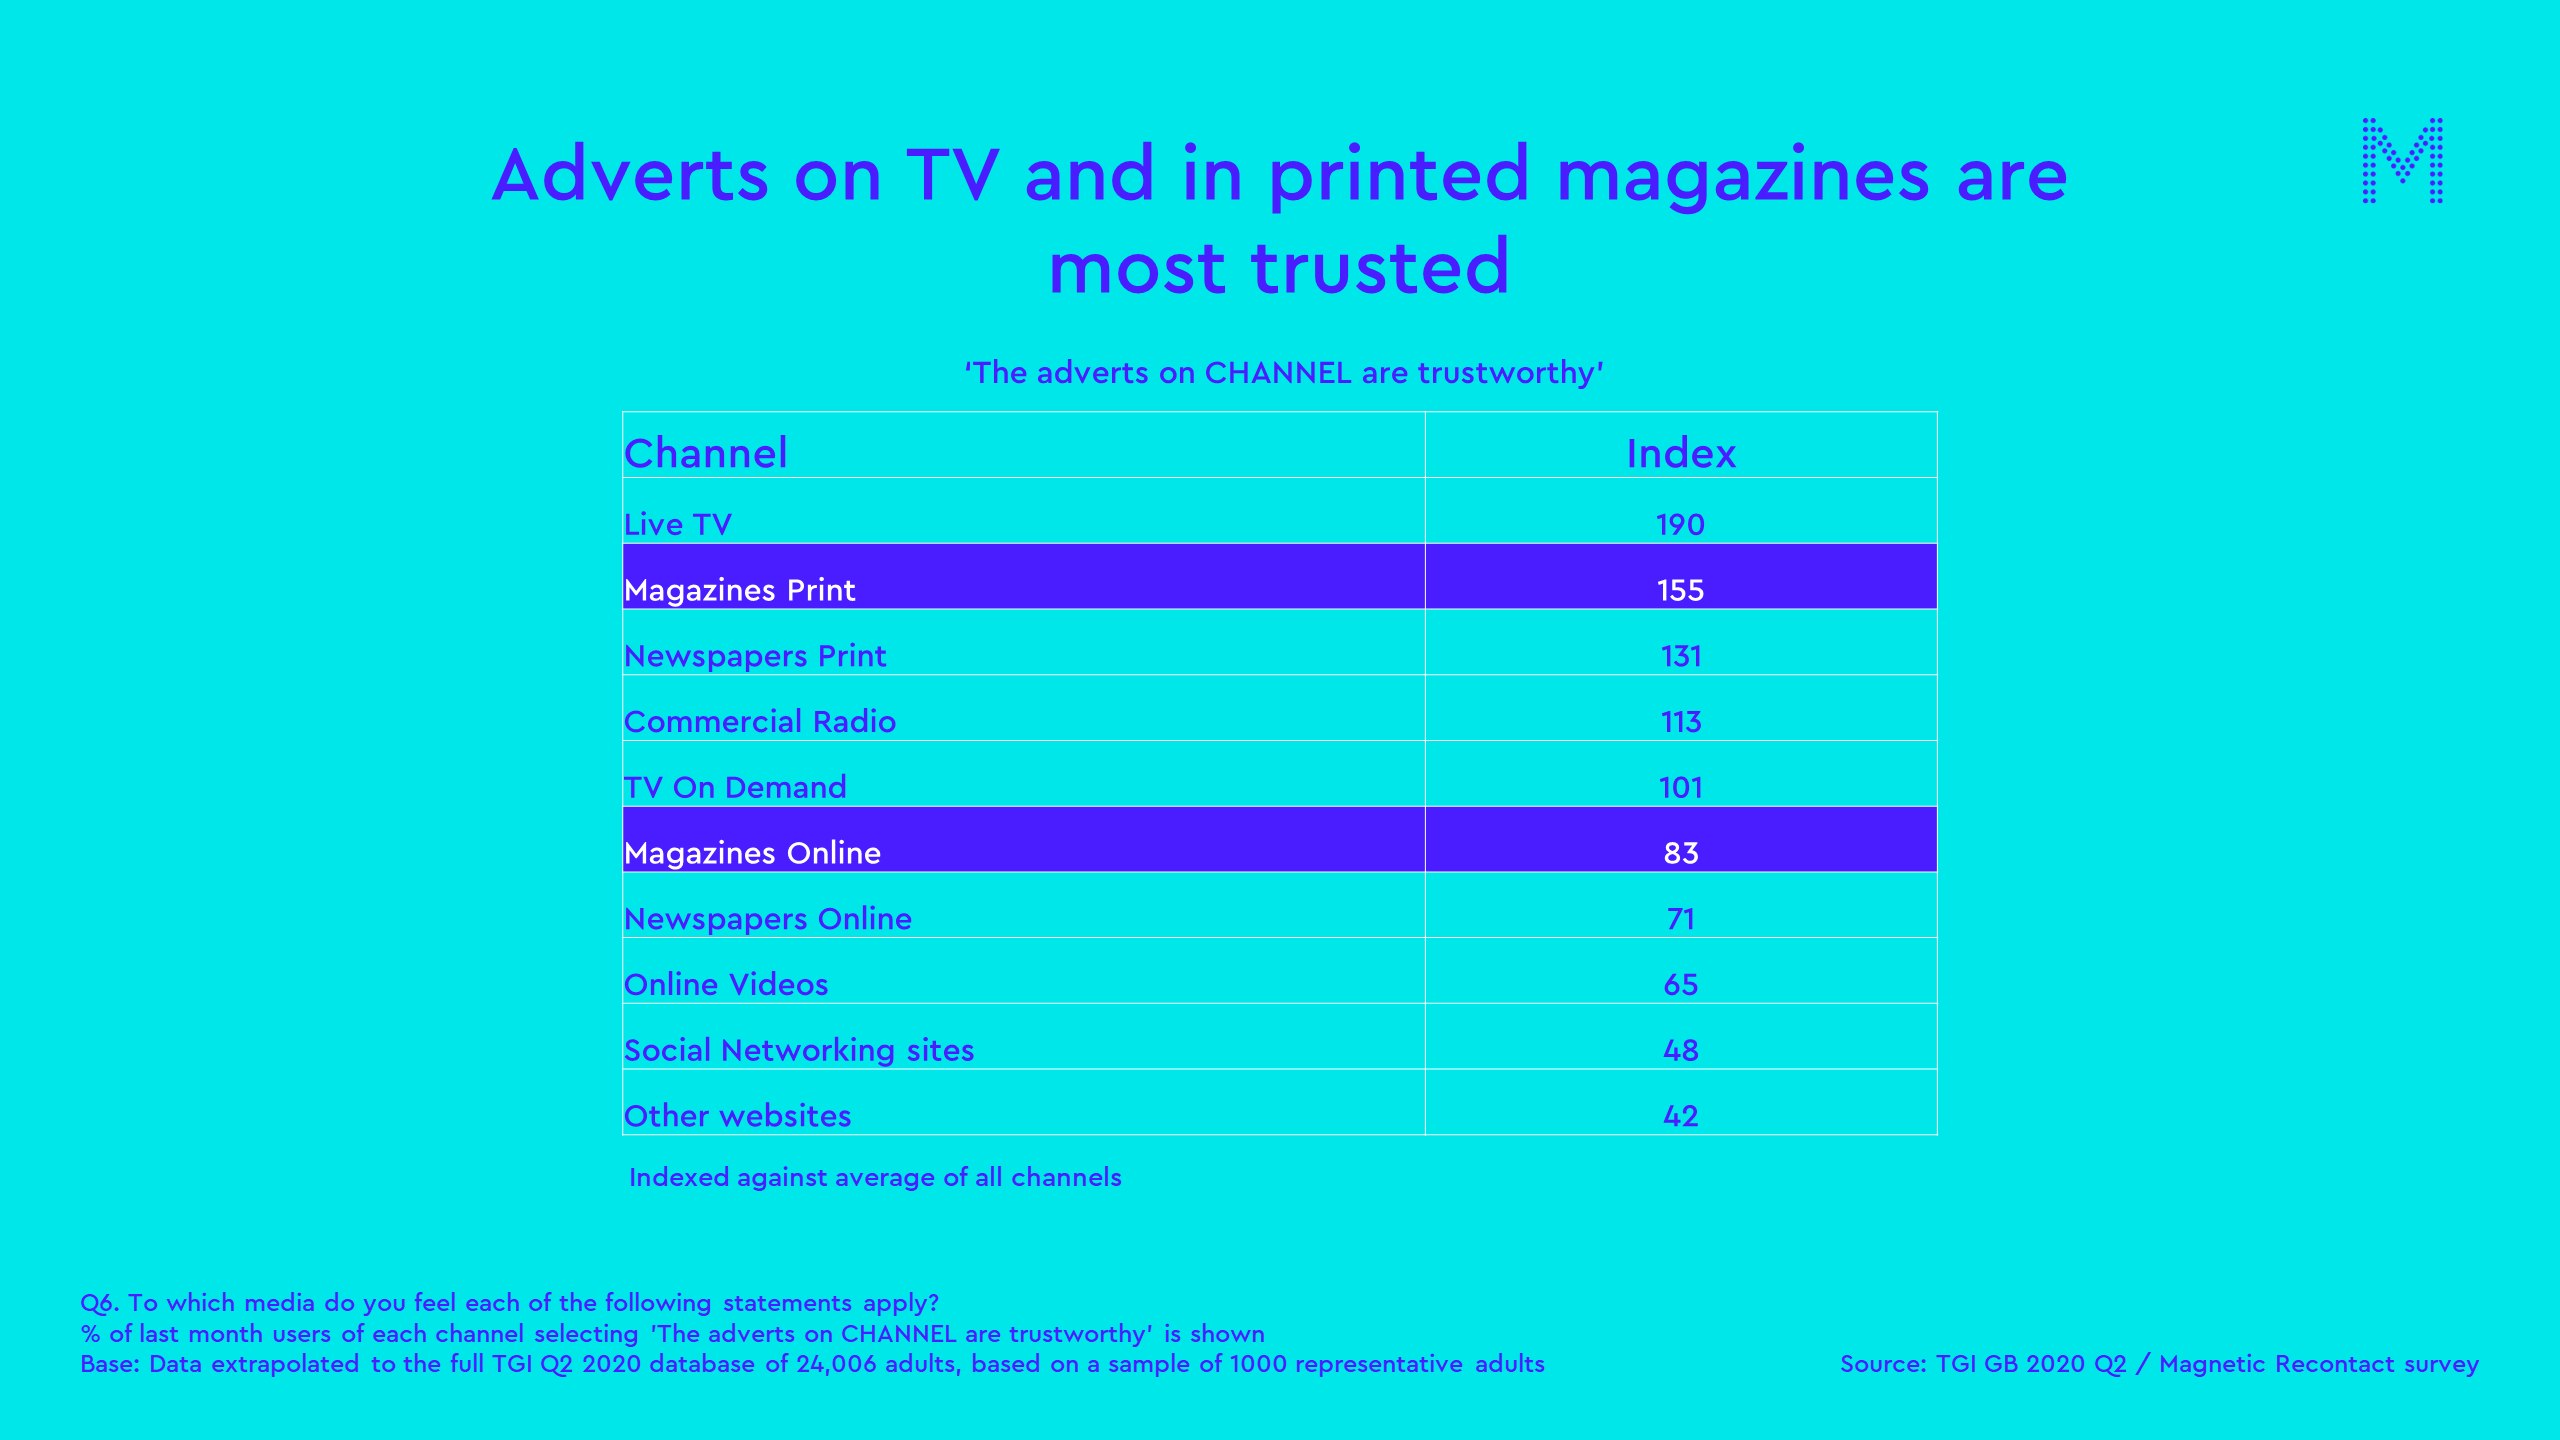 Adverts on TV and in printed magazines are most trusted